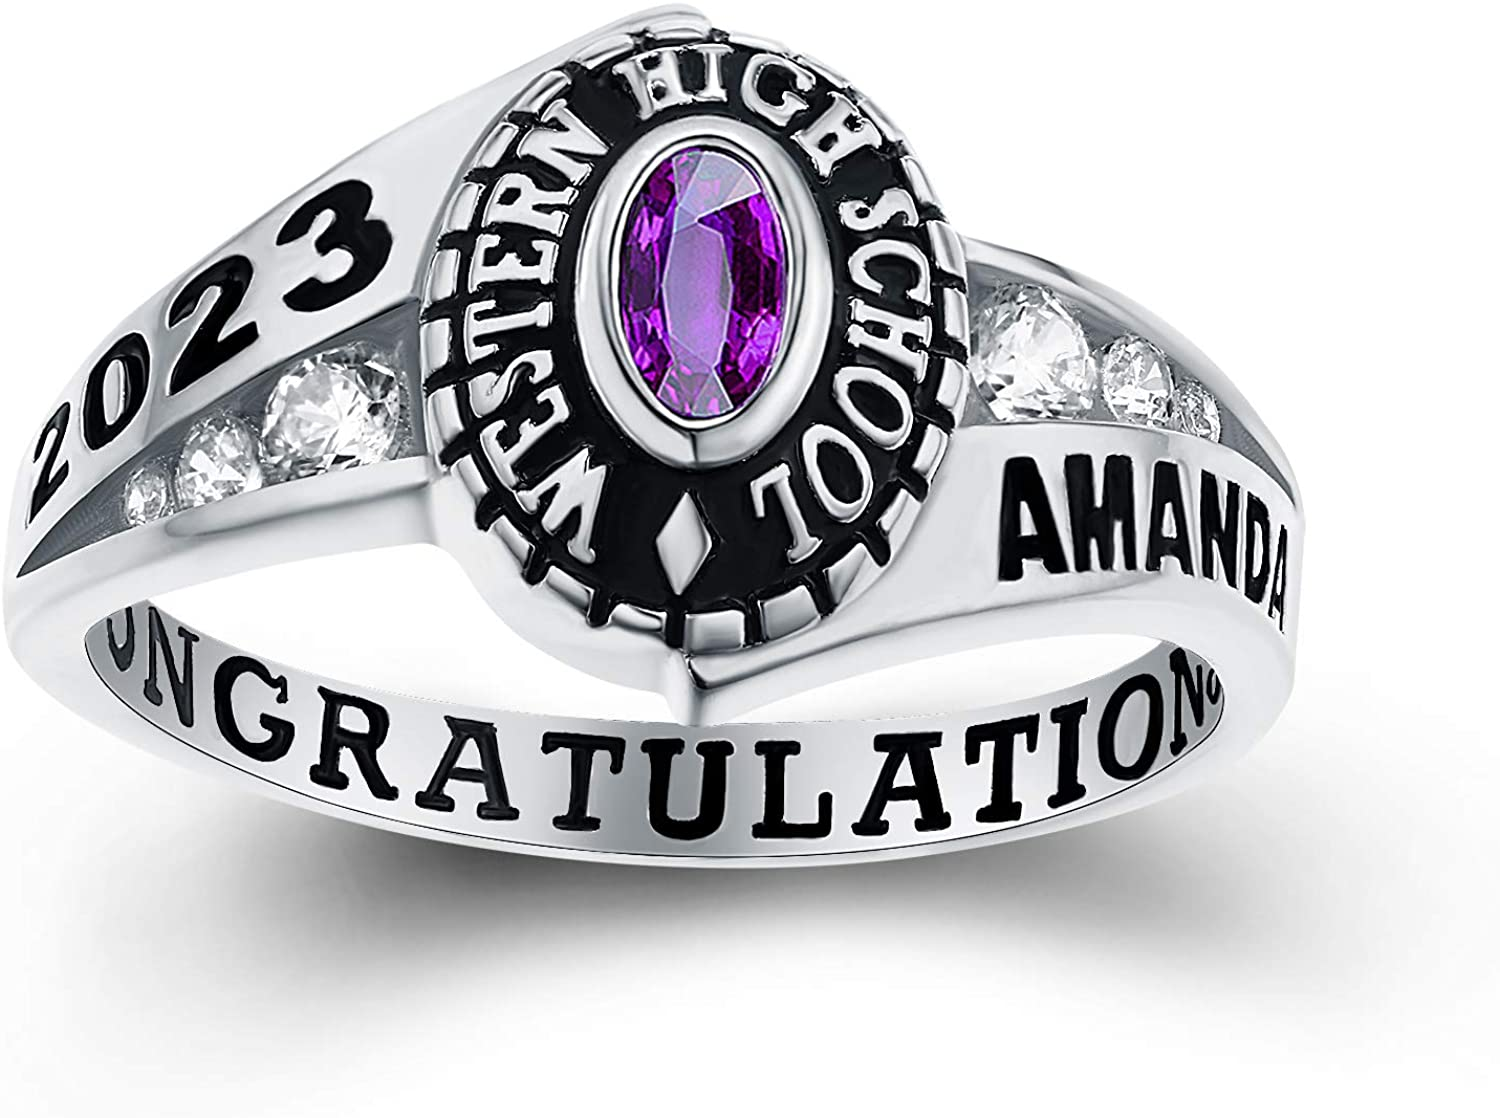 Customized Women's High School and Class Ring College Manufacturer direct delivery †2021 spring and summer new